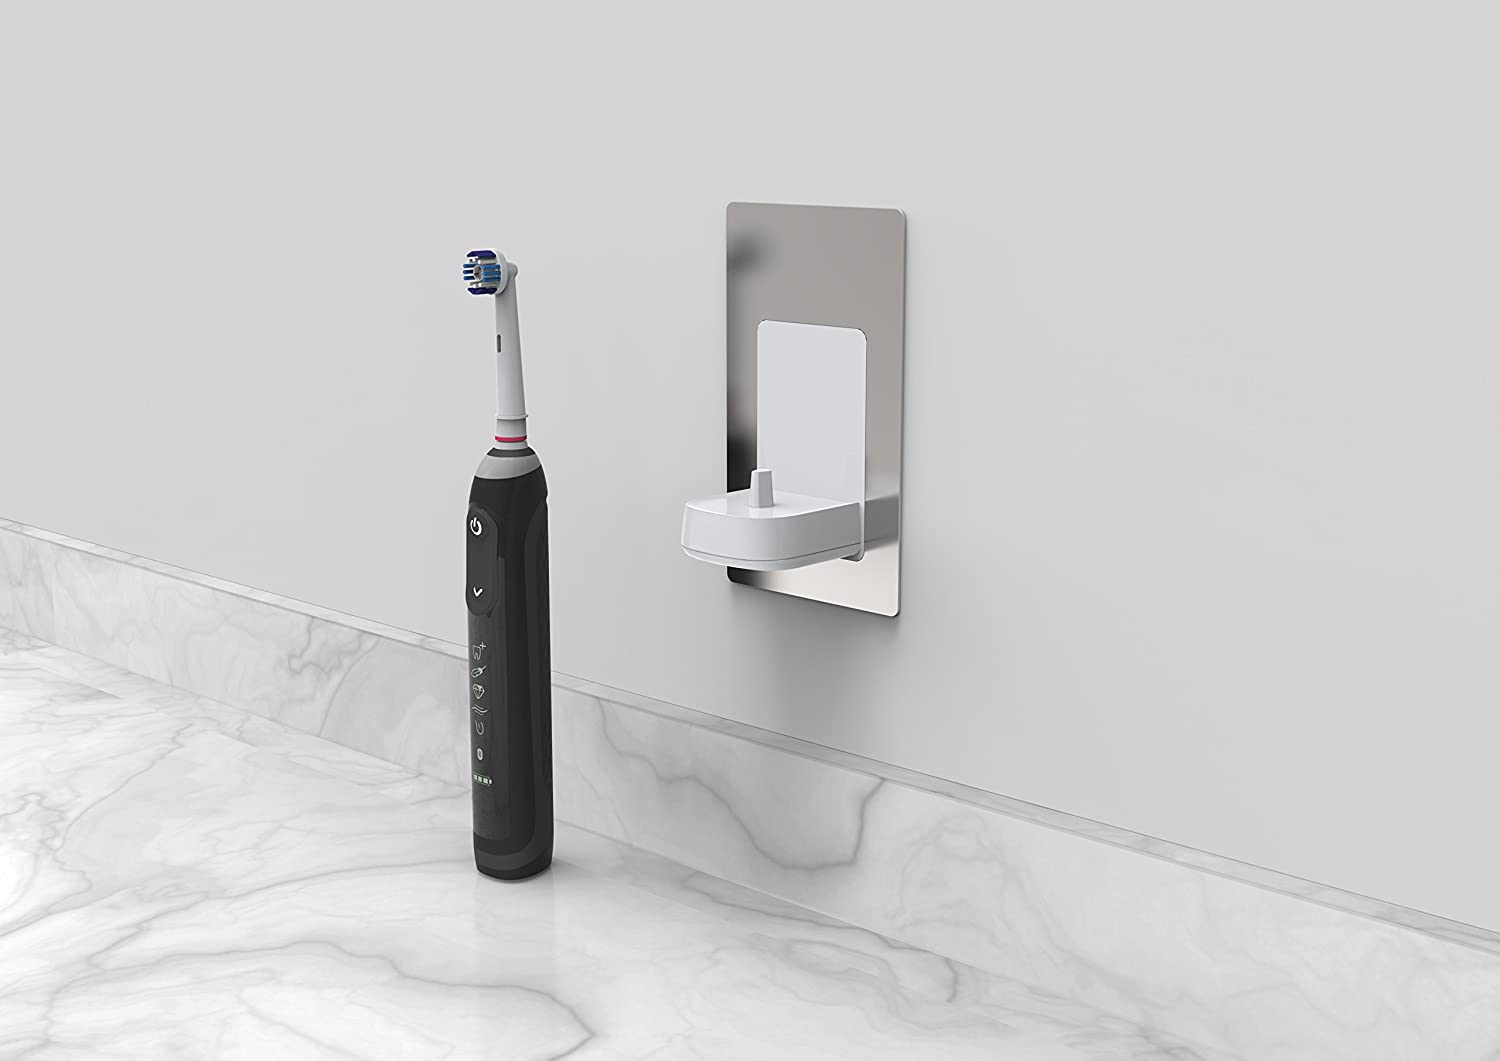 In Wall Electronic Toothbrush Charger by ProofVision Compatible with Oral BBraun Electric Toothbrushes